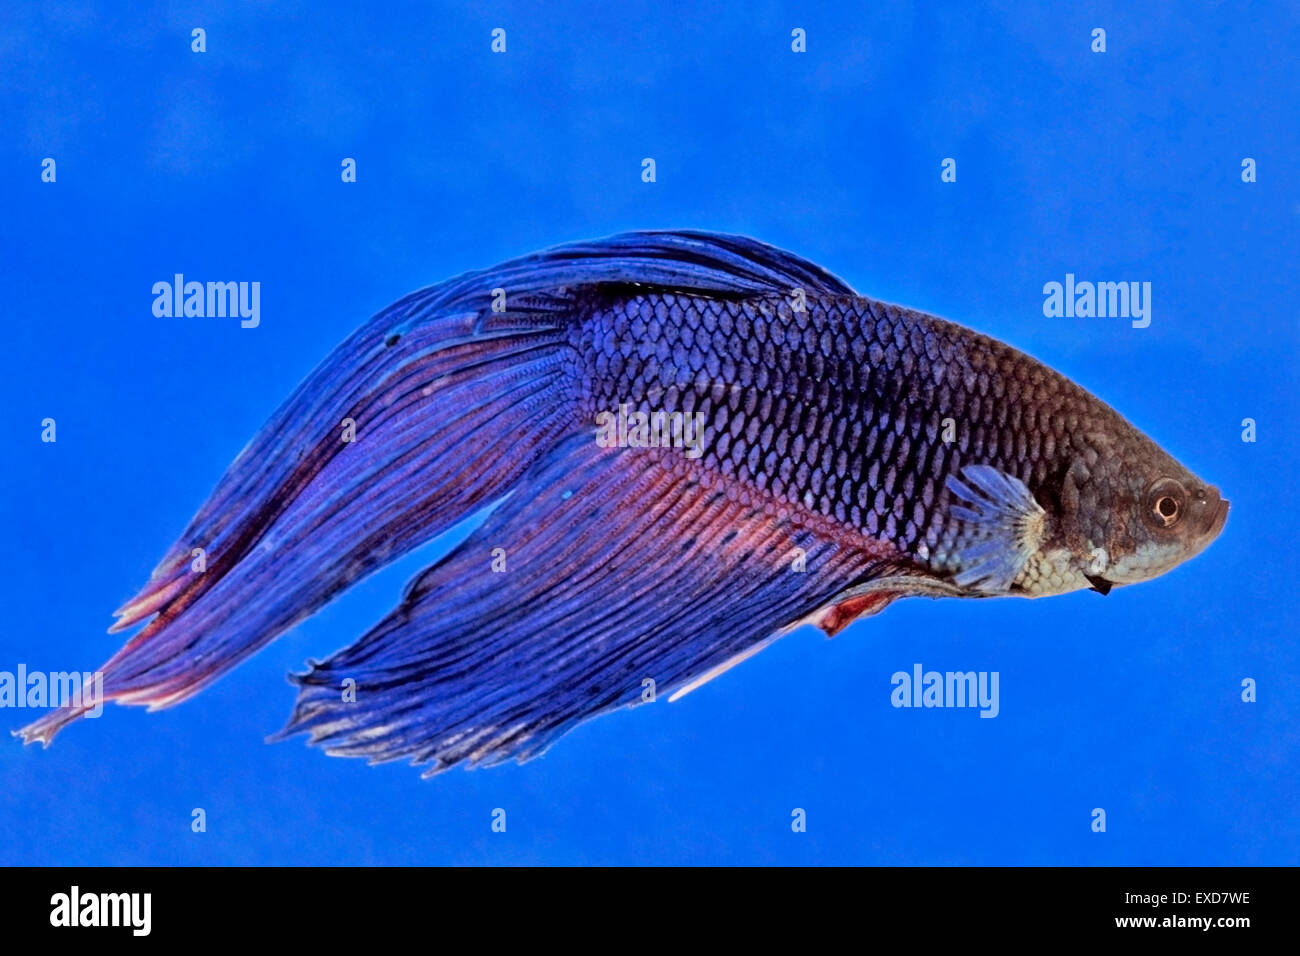 Siamese Fighting fish swimming in glass bowl - Stock Image